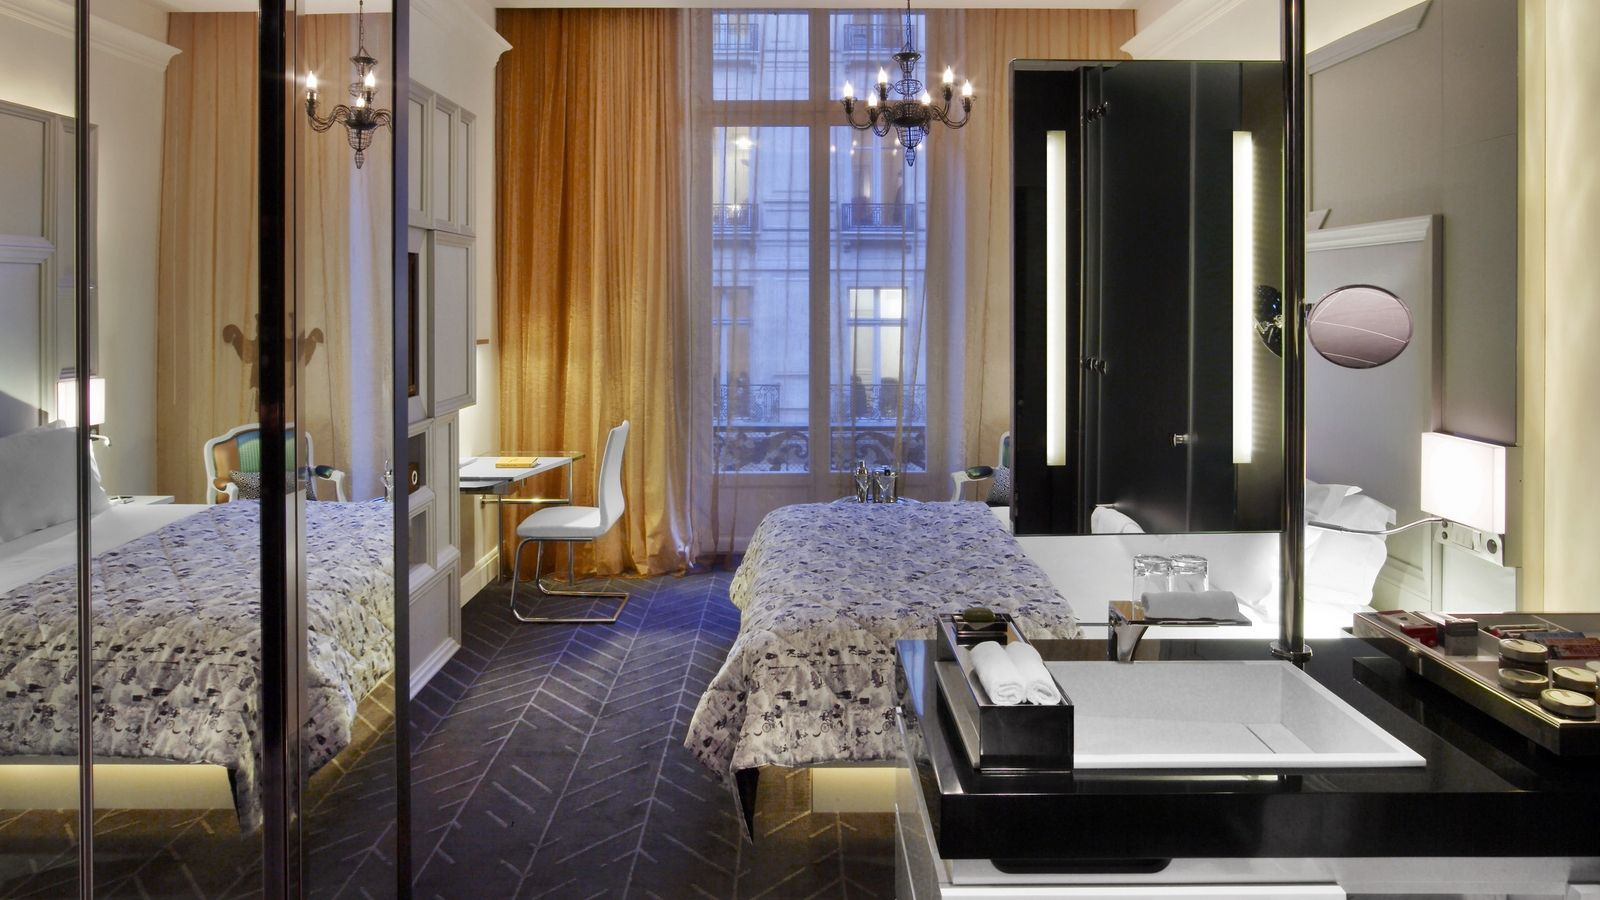 Chambre Wonderful hôtel paris